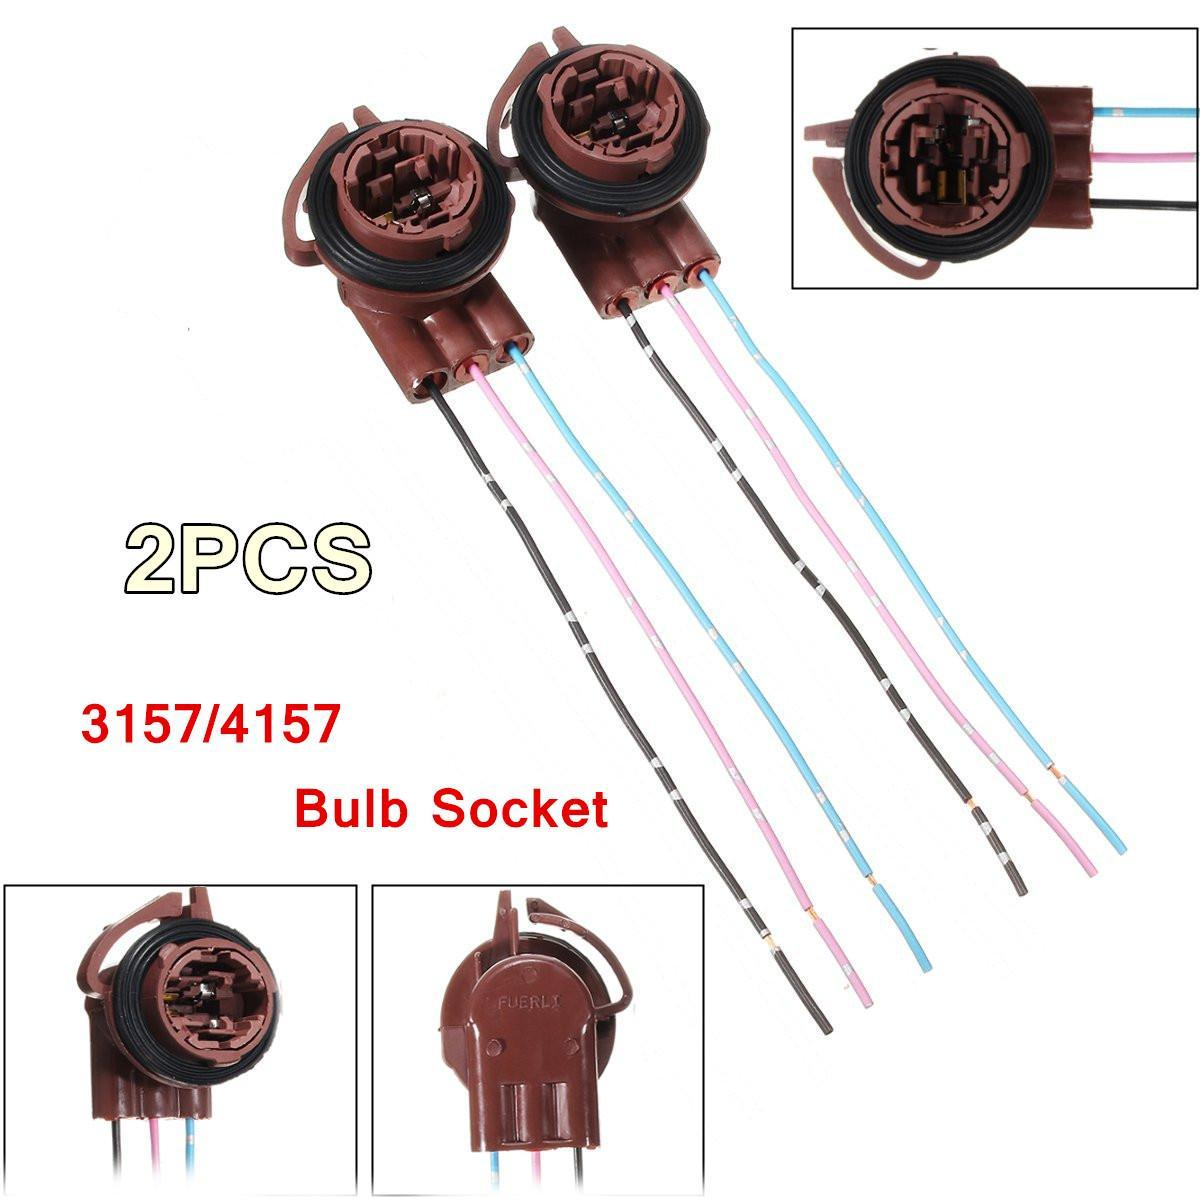 hight resolution of product details of 2pcs 3157 4157 turn light brake bulb socket connector wire harness plug adapter